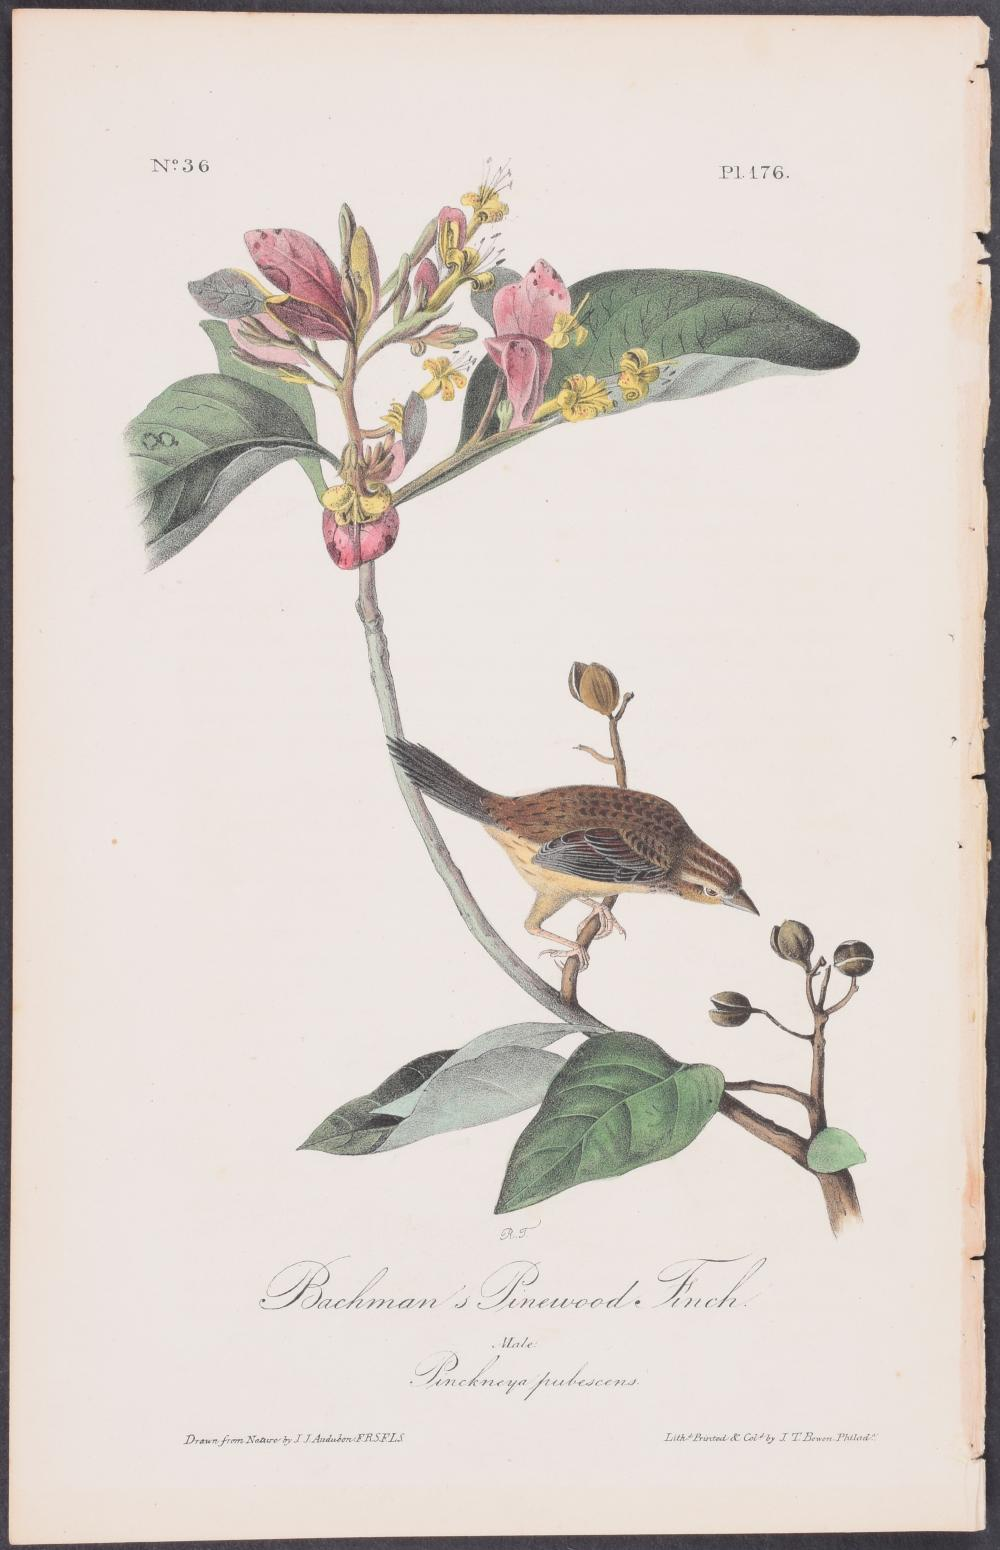 Lot 11104: Audubon - Bachman's Pinewood Finch. 176